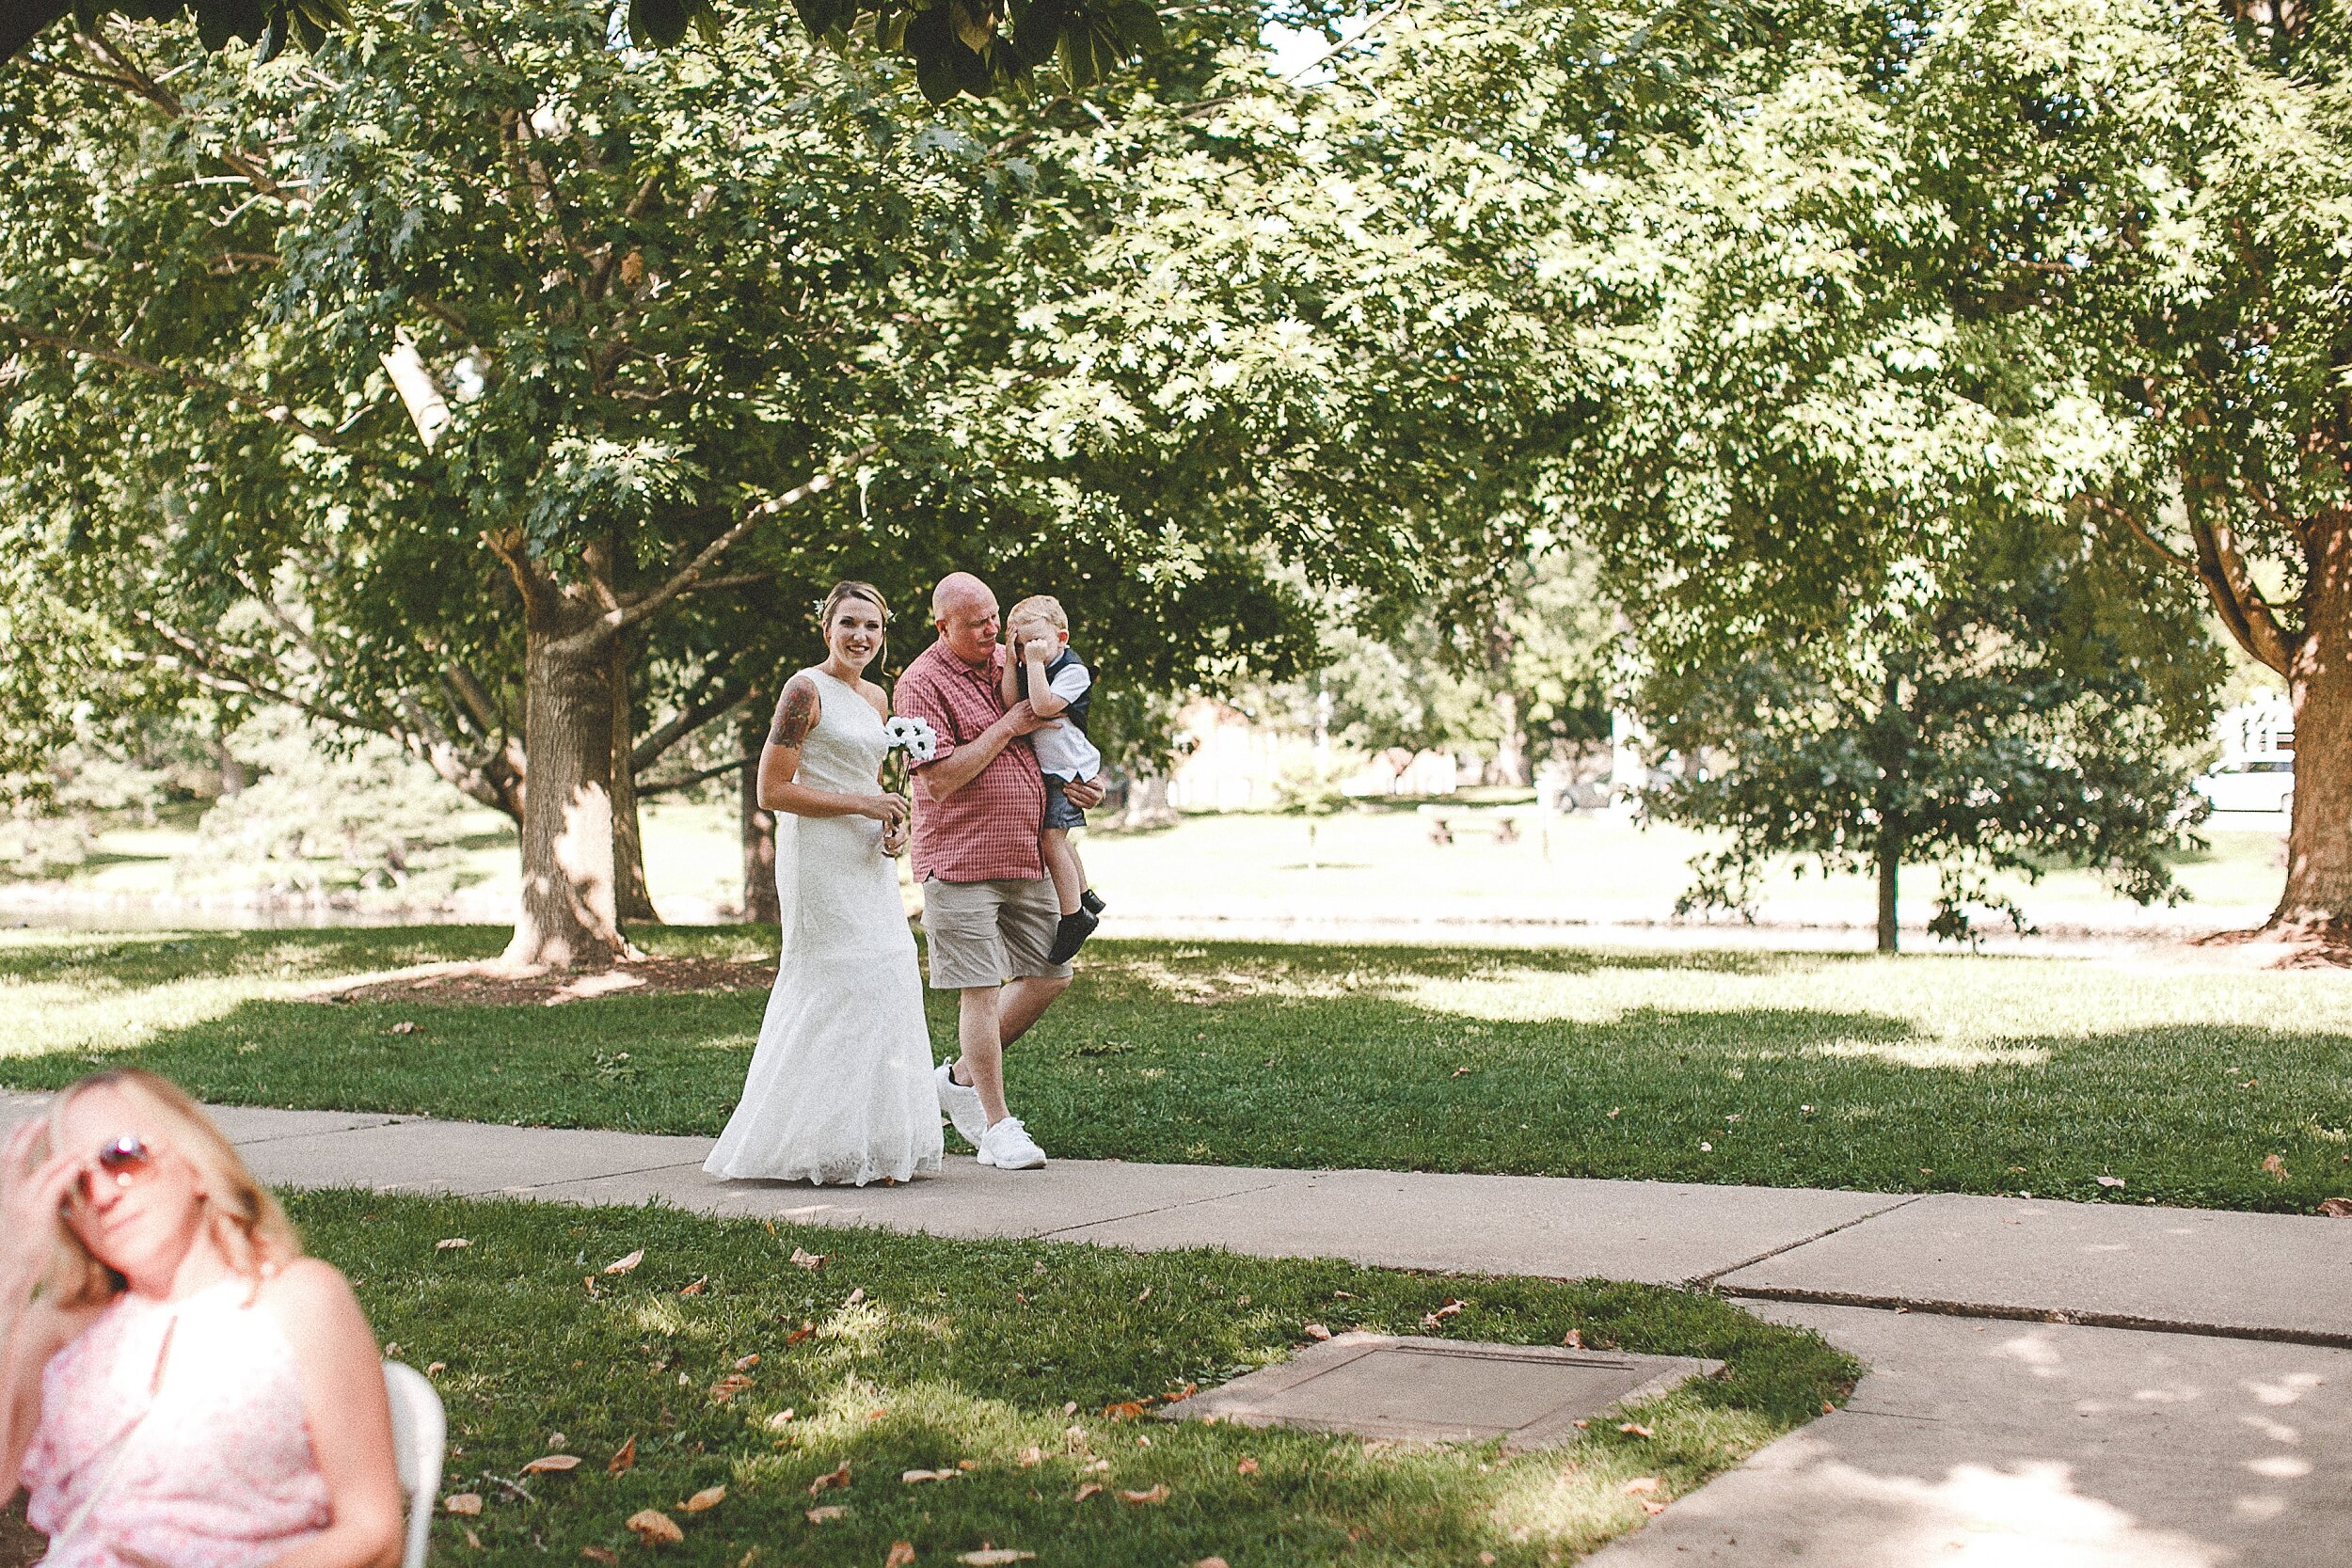 washington-park-gazebo-springfield-il-wedding-photography_0026.jpg